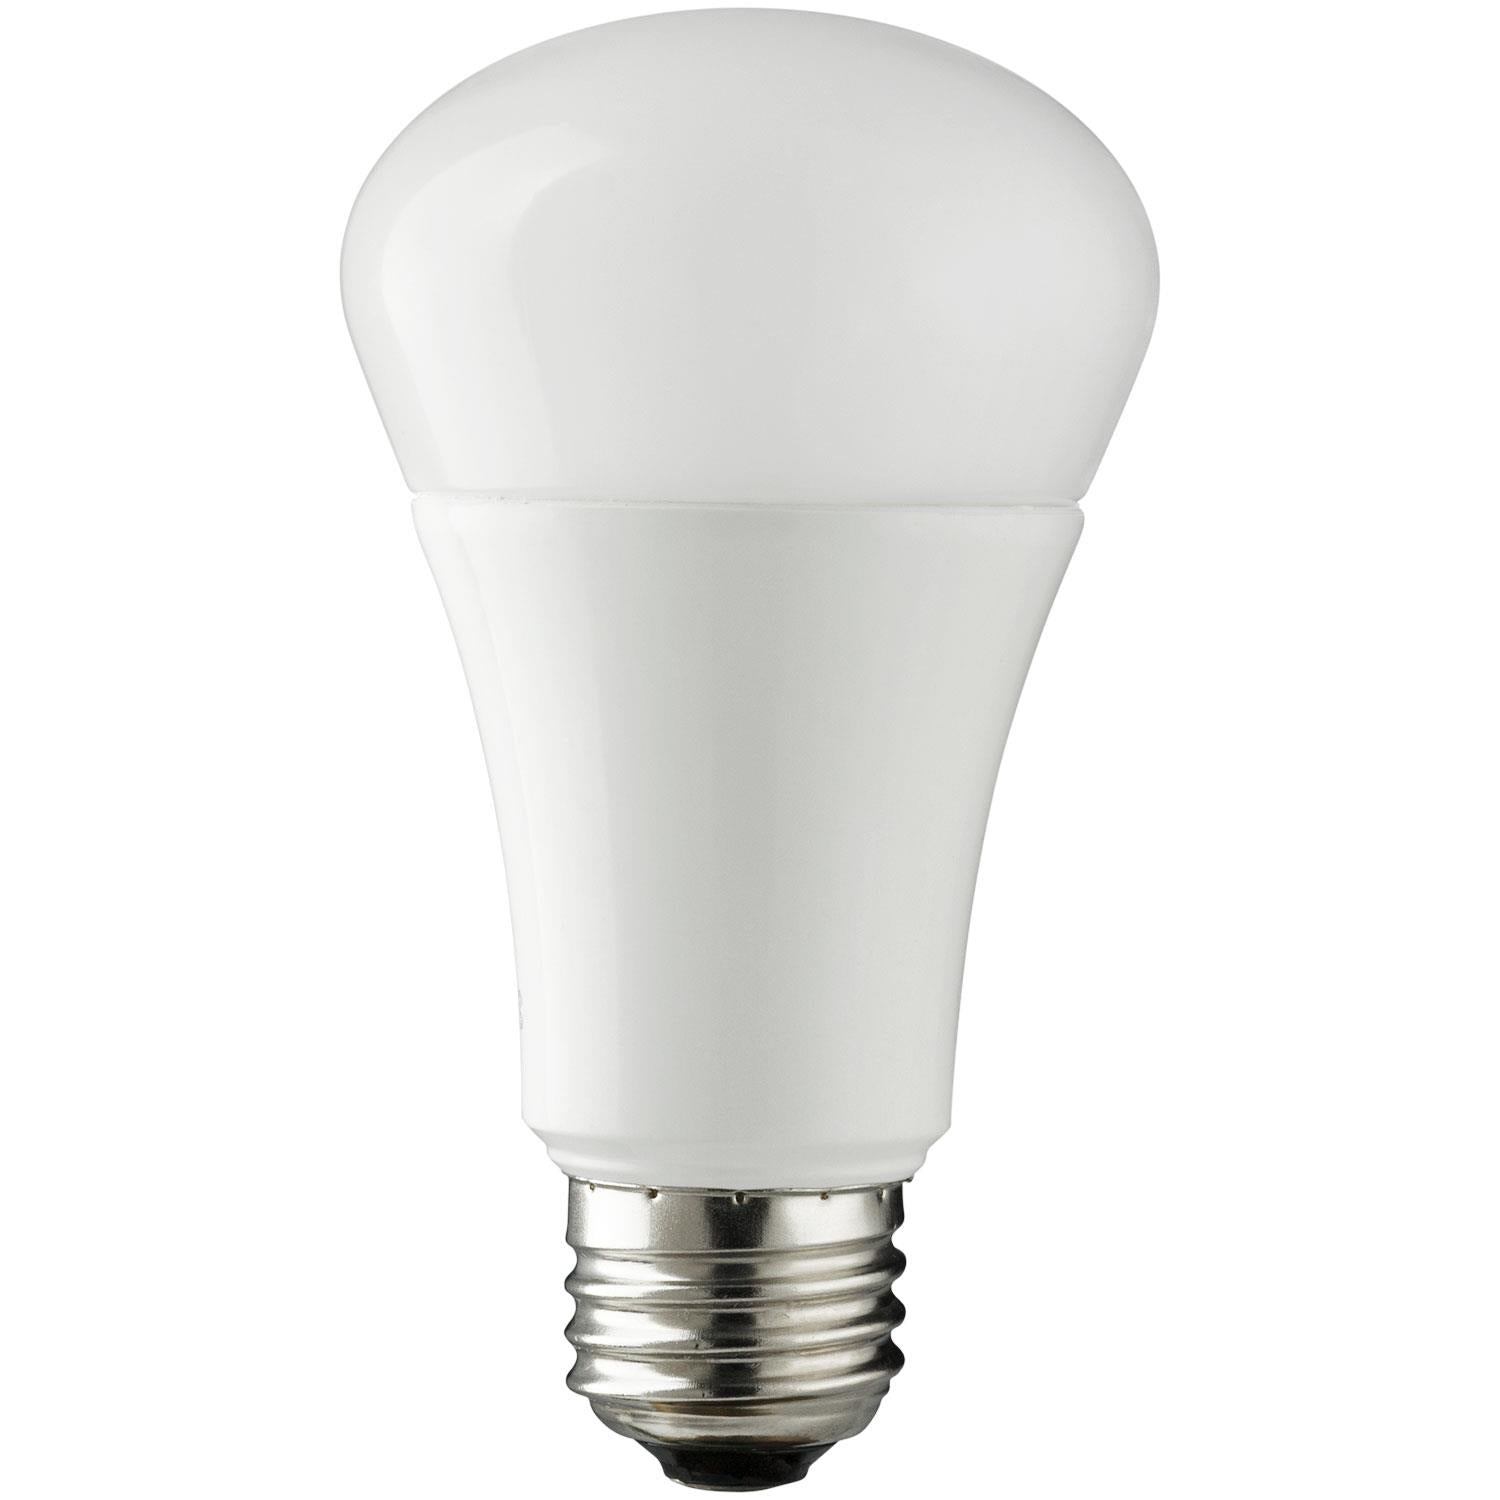 SUNLITE 80743-SU LED A19 Household 12w Light Bulb Daylight 5000K